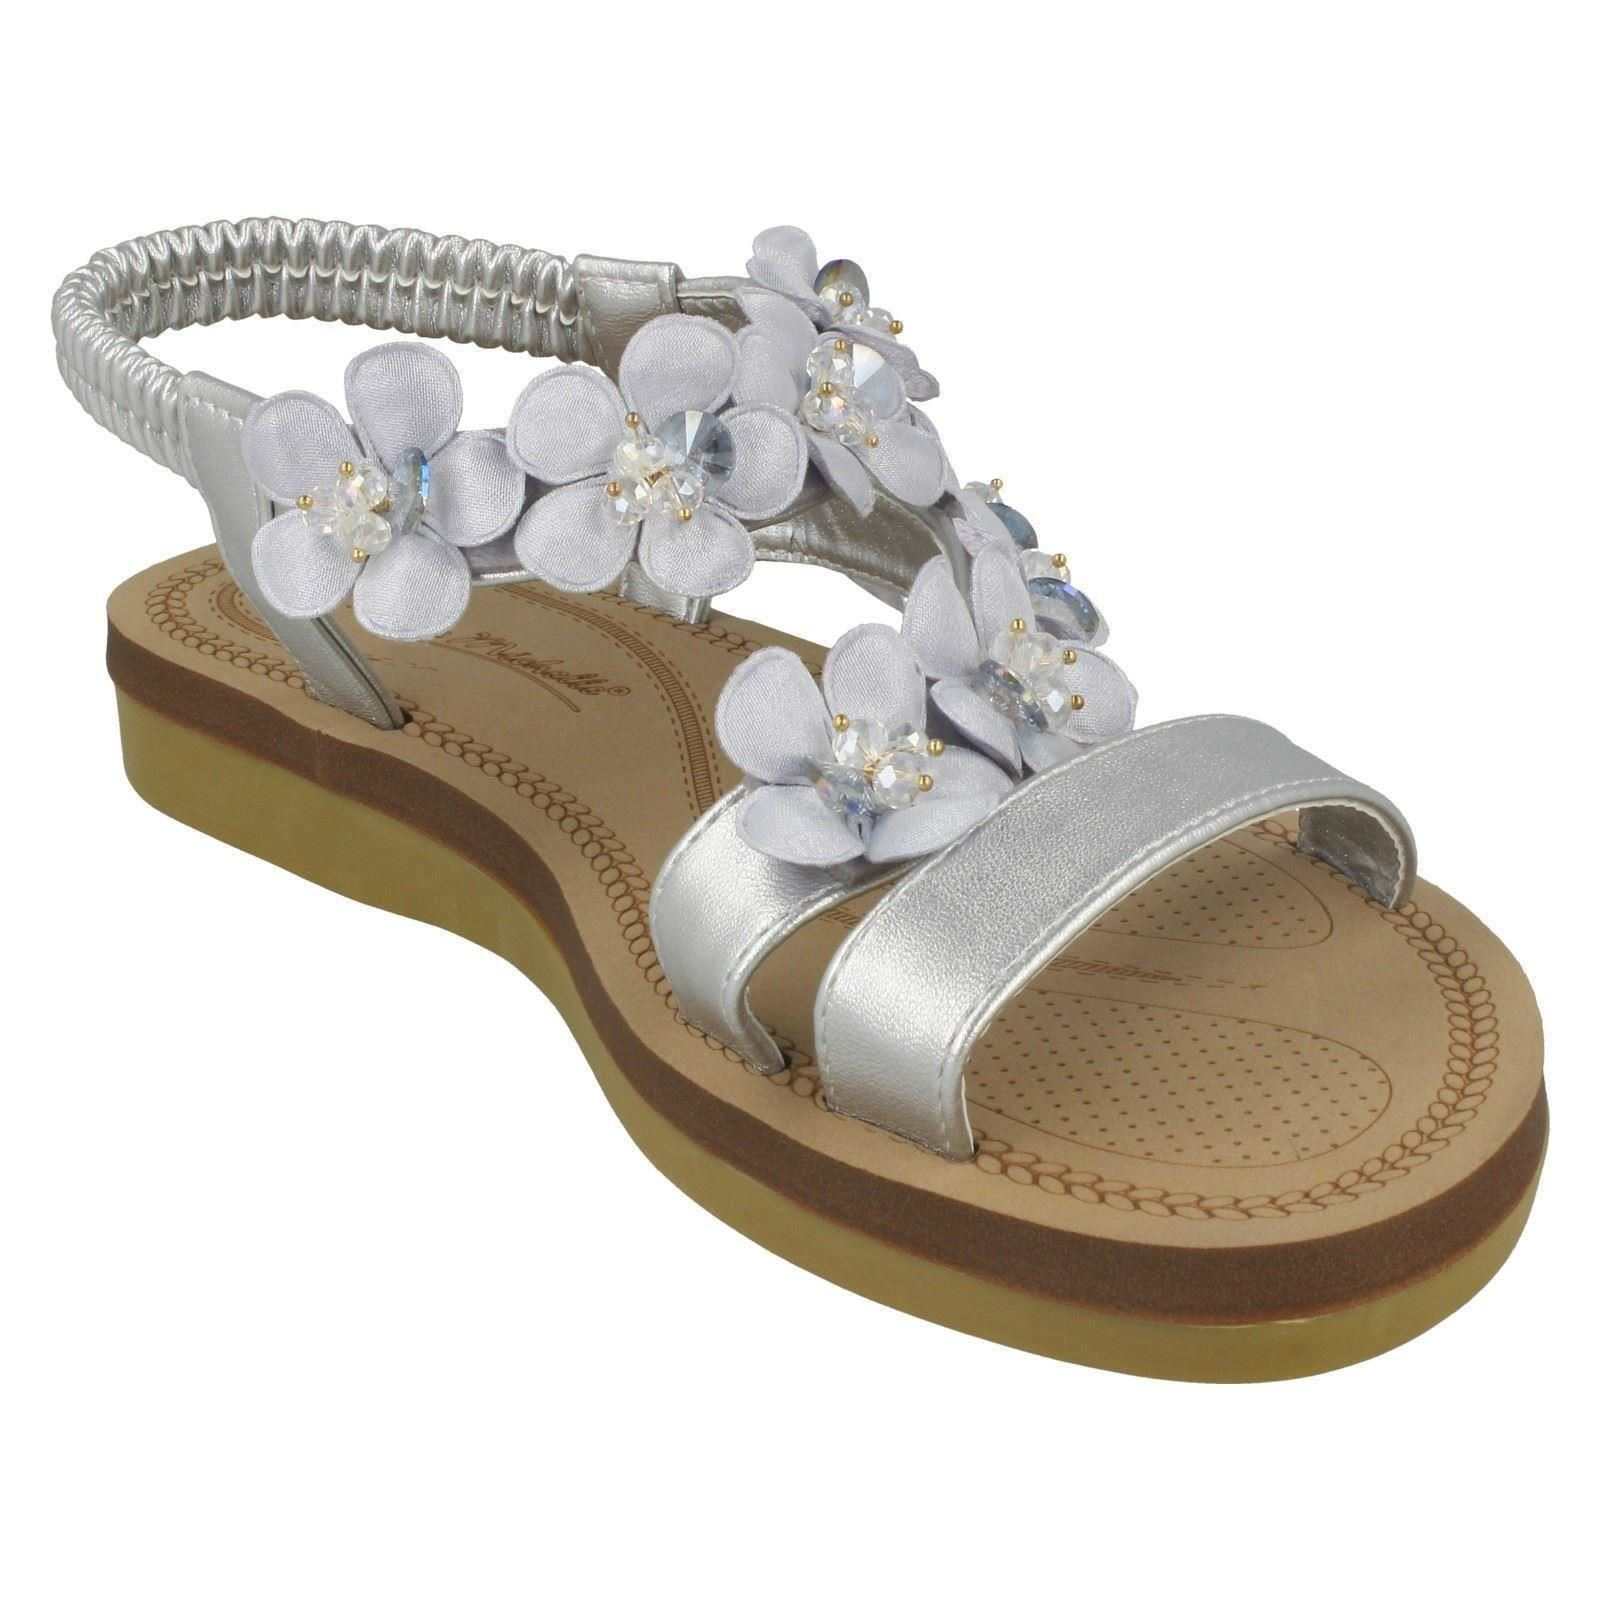 Ladies-Anne-Michelle-Synthetic-Flower-Trim-Sandals